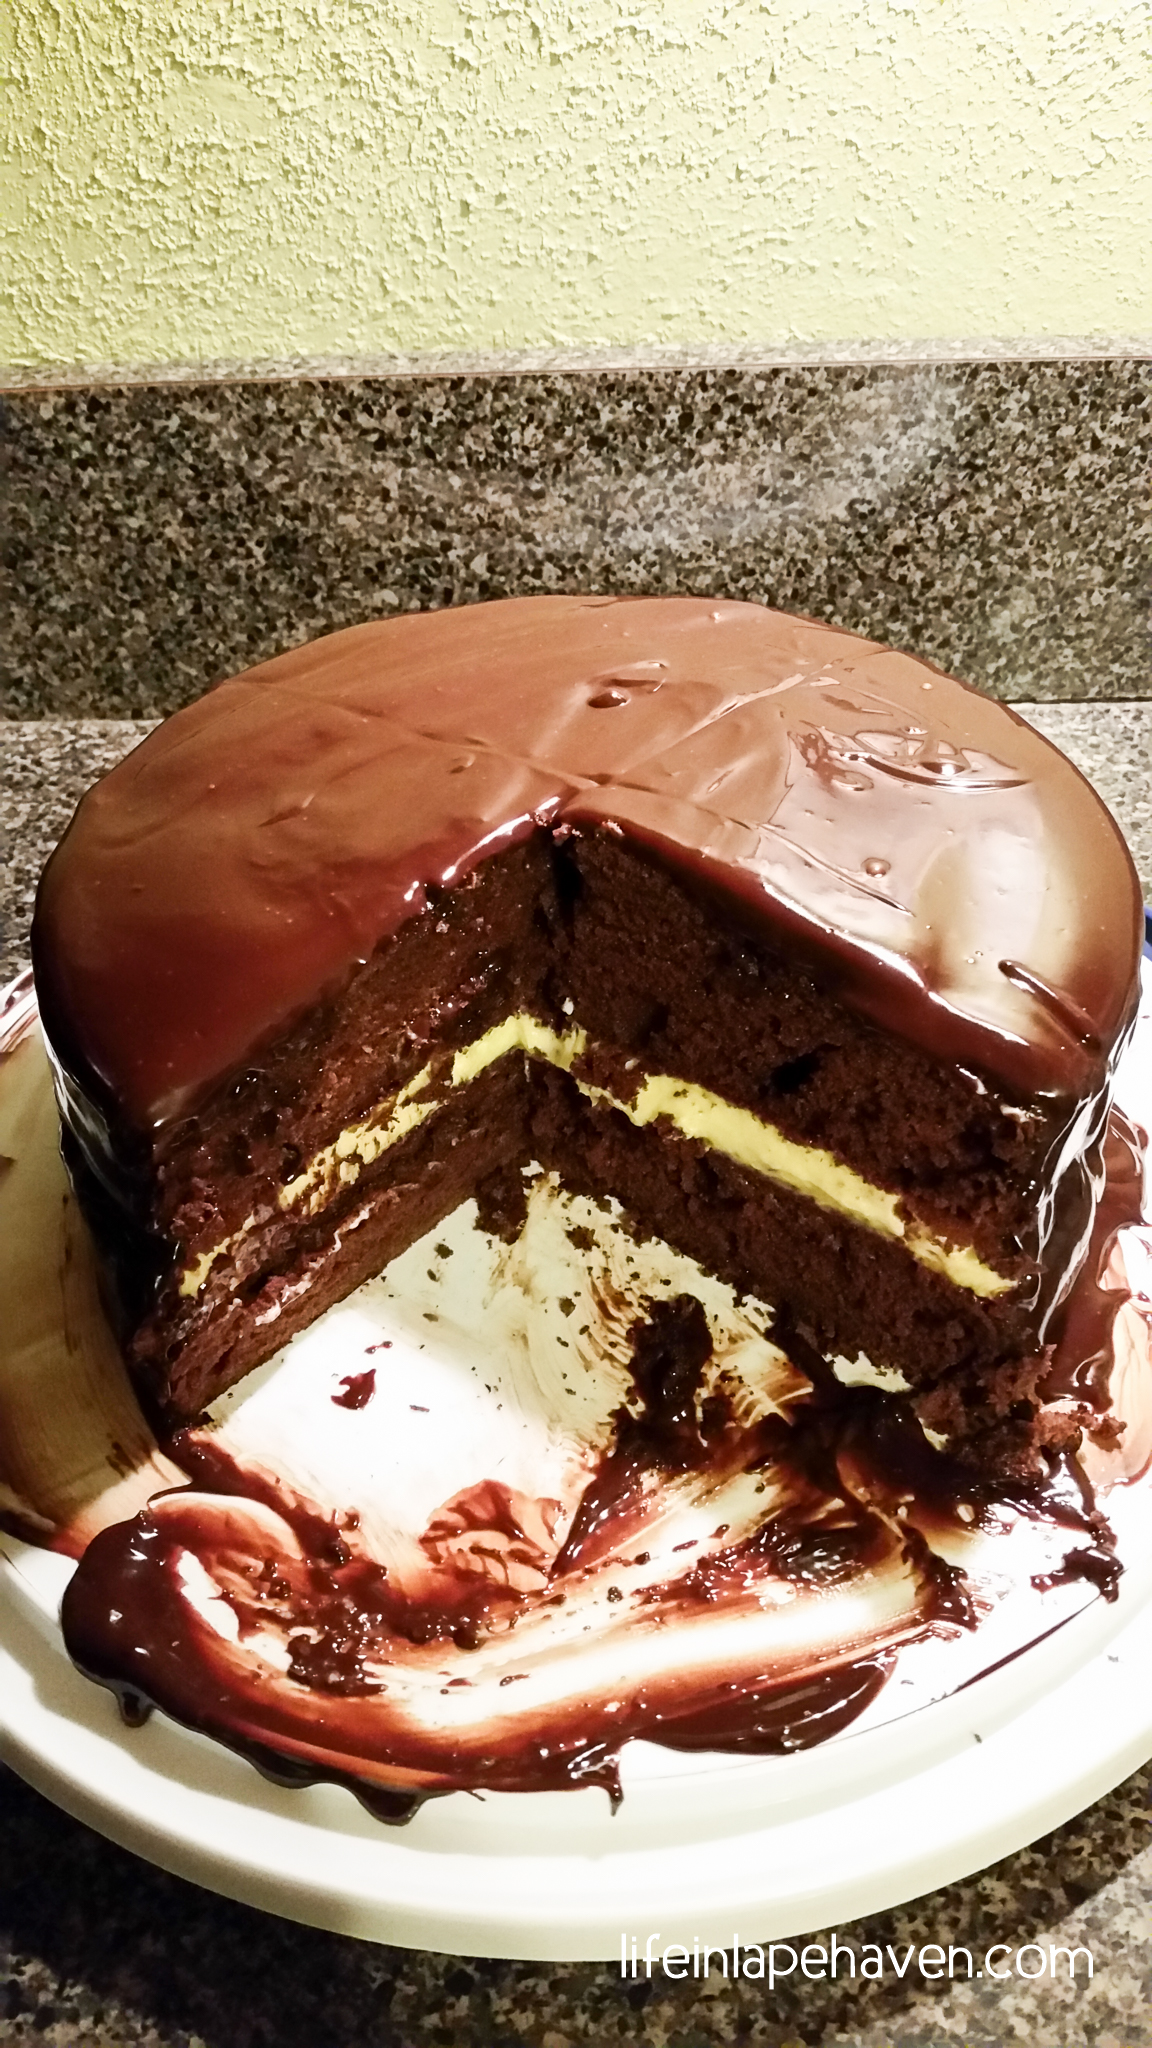 Chocolate Cake with Bavarian Cream Filling & Chocolate Ganache